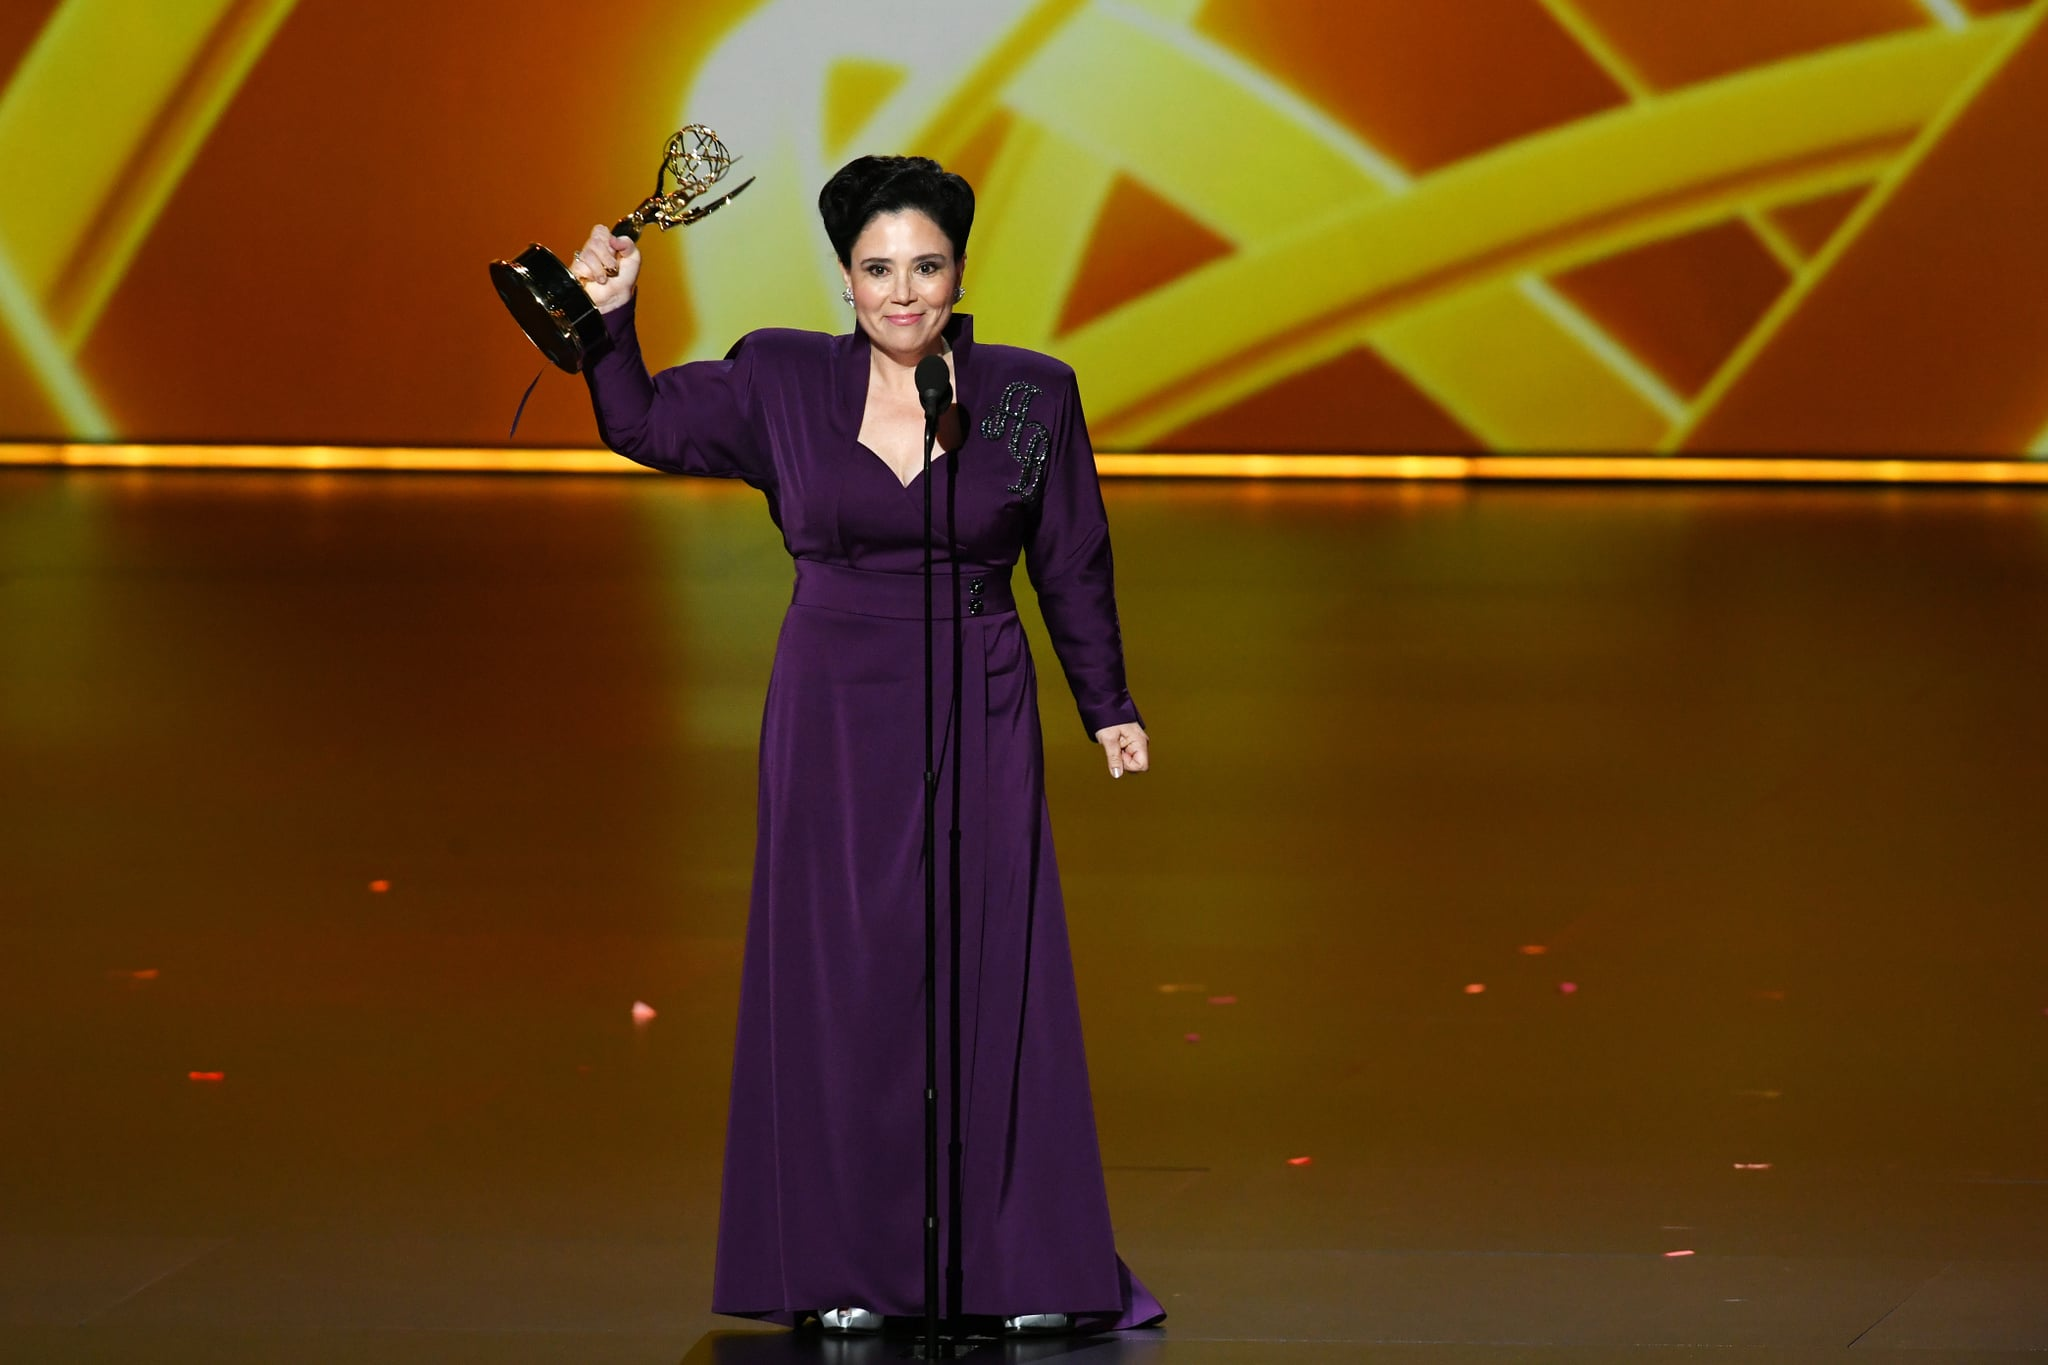 LOS ANGELES, CALIFORNIA - SEPTEMBER 22: Alex Borstein accepts the Outstanding Supporting Actress in a Comedy Series award for 'The Marvelous Mrs. Maisel' onstage during the 71st Emmy Awards at Microsoft Theatre on September 22, 2019 in Los Angeles, California. (Photo by Kevin Winter/Getty Images)